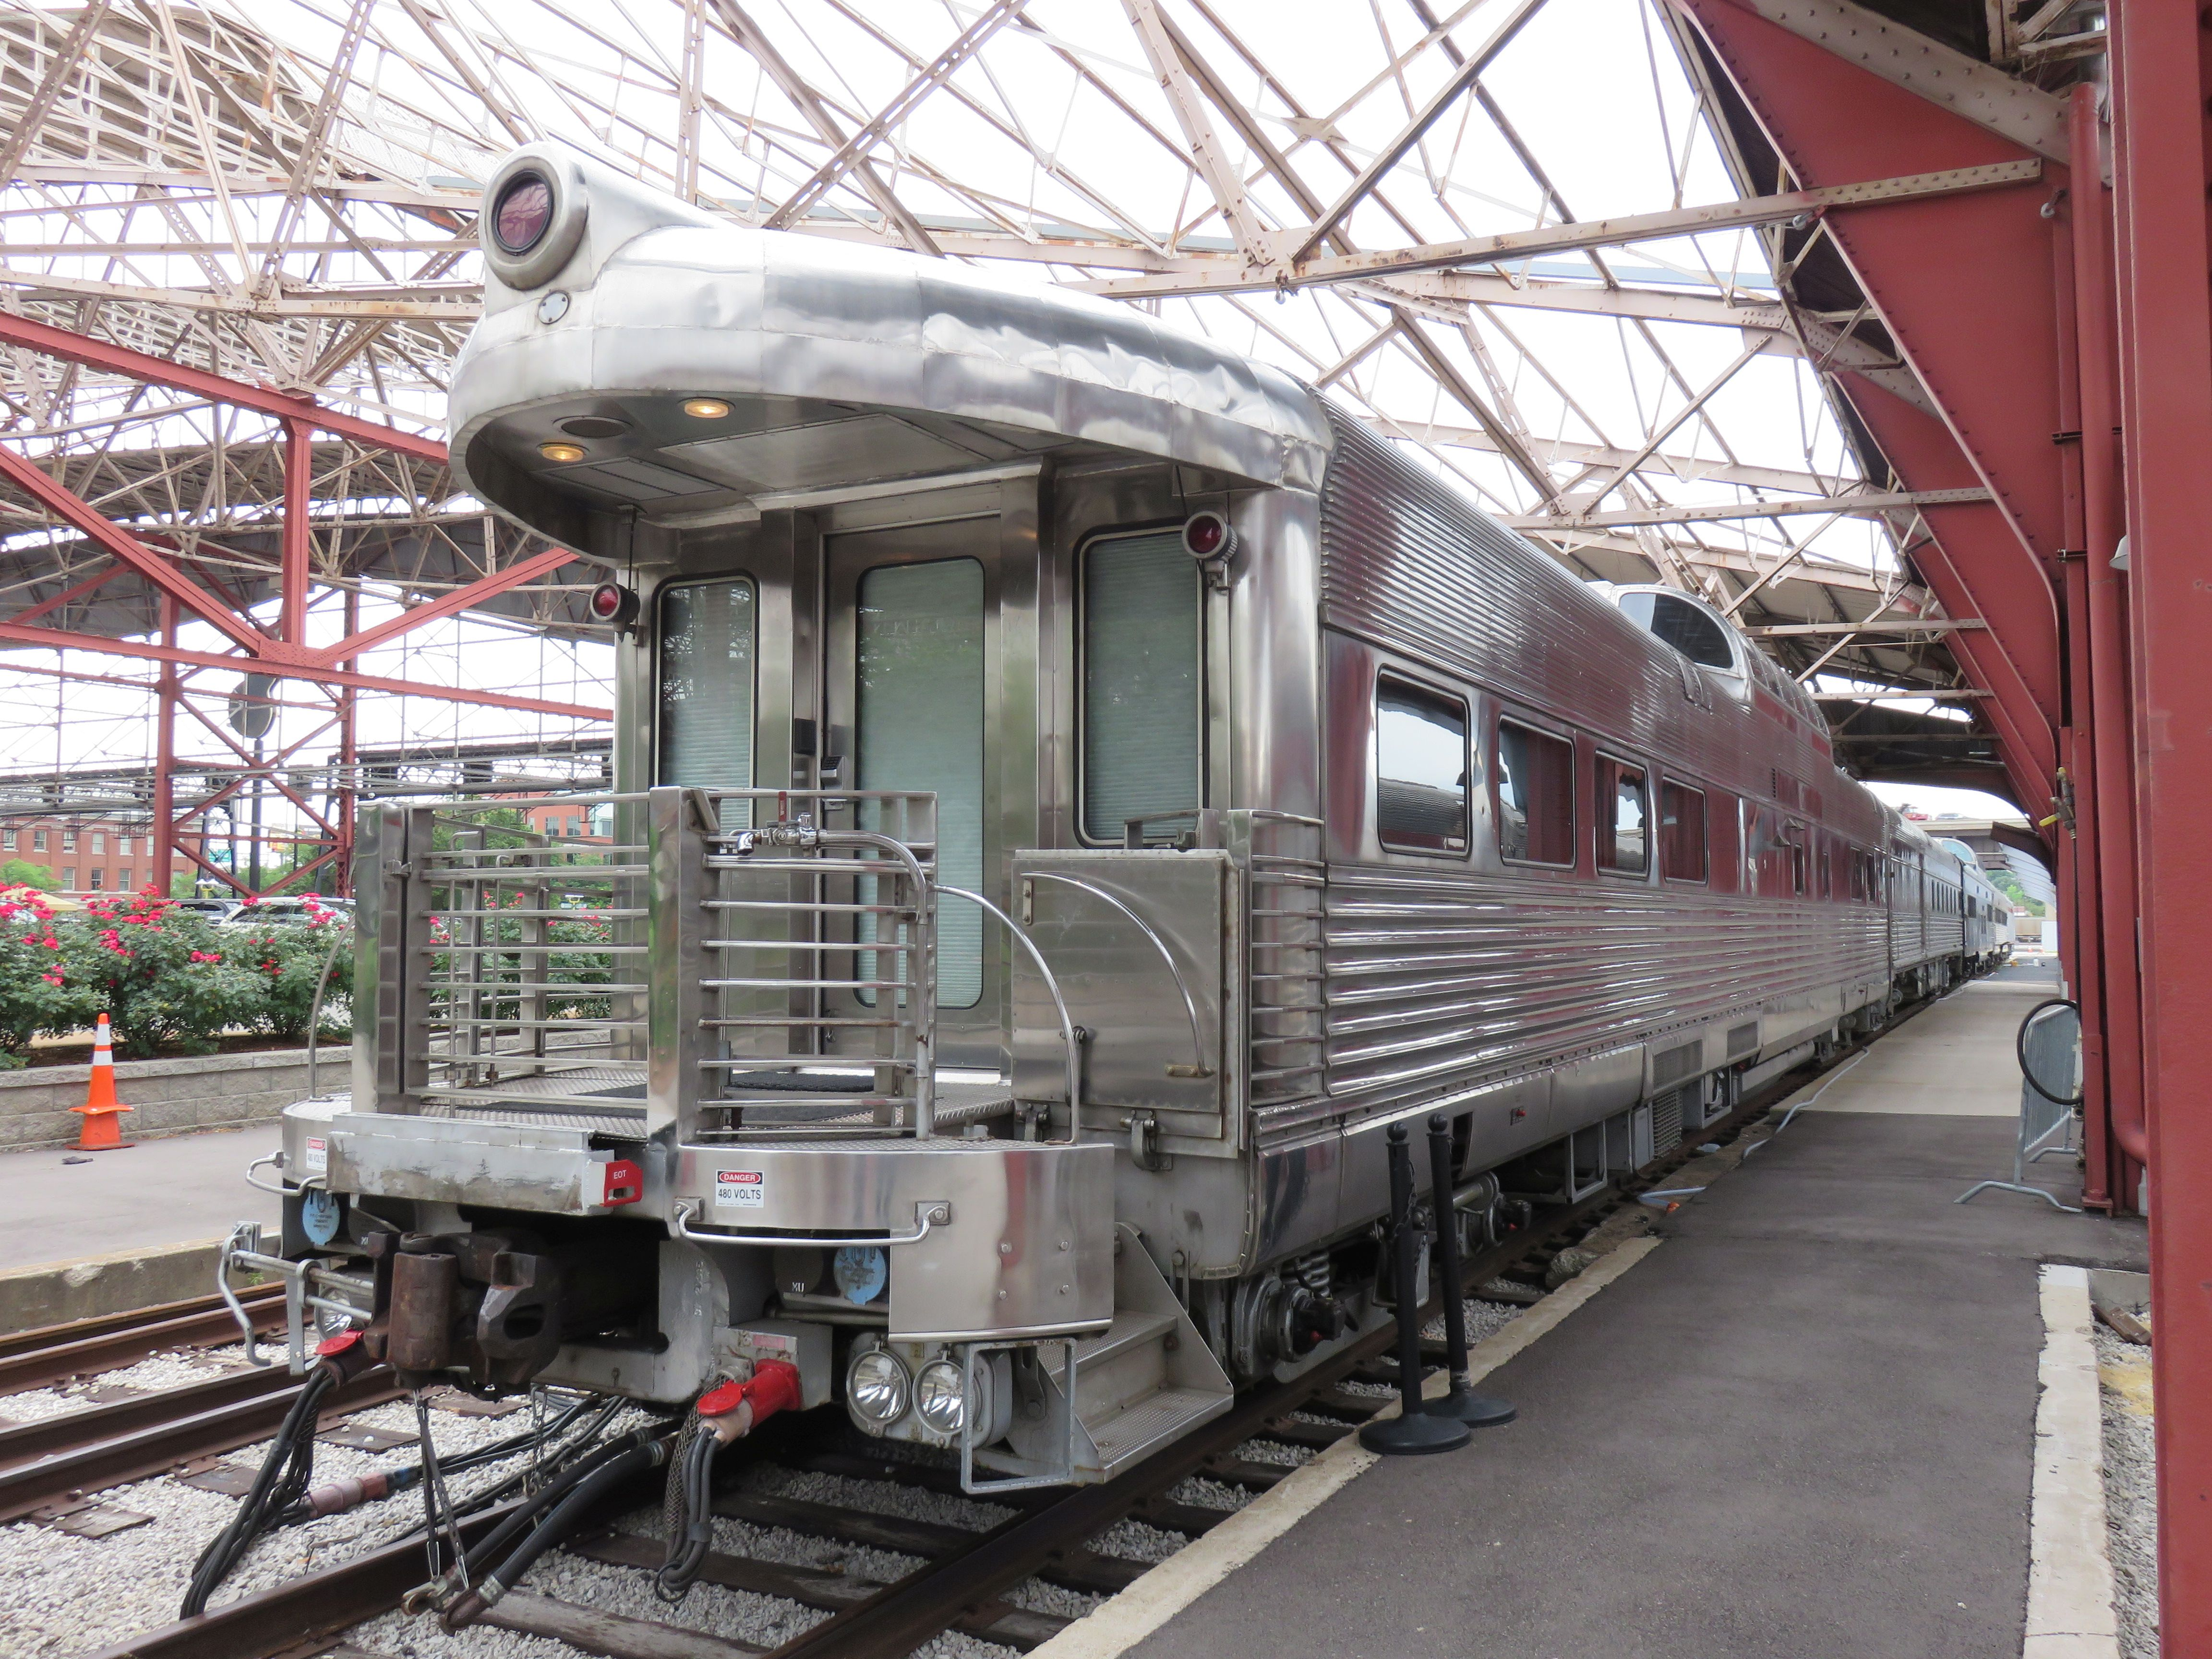 Meet Me In St Louis For Vintage Trains And Laser Light